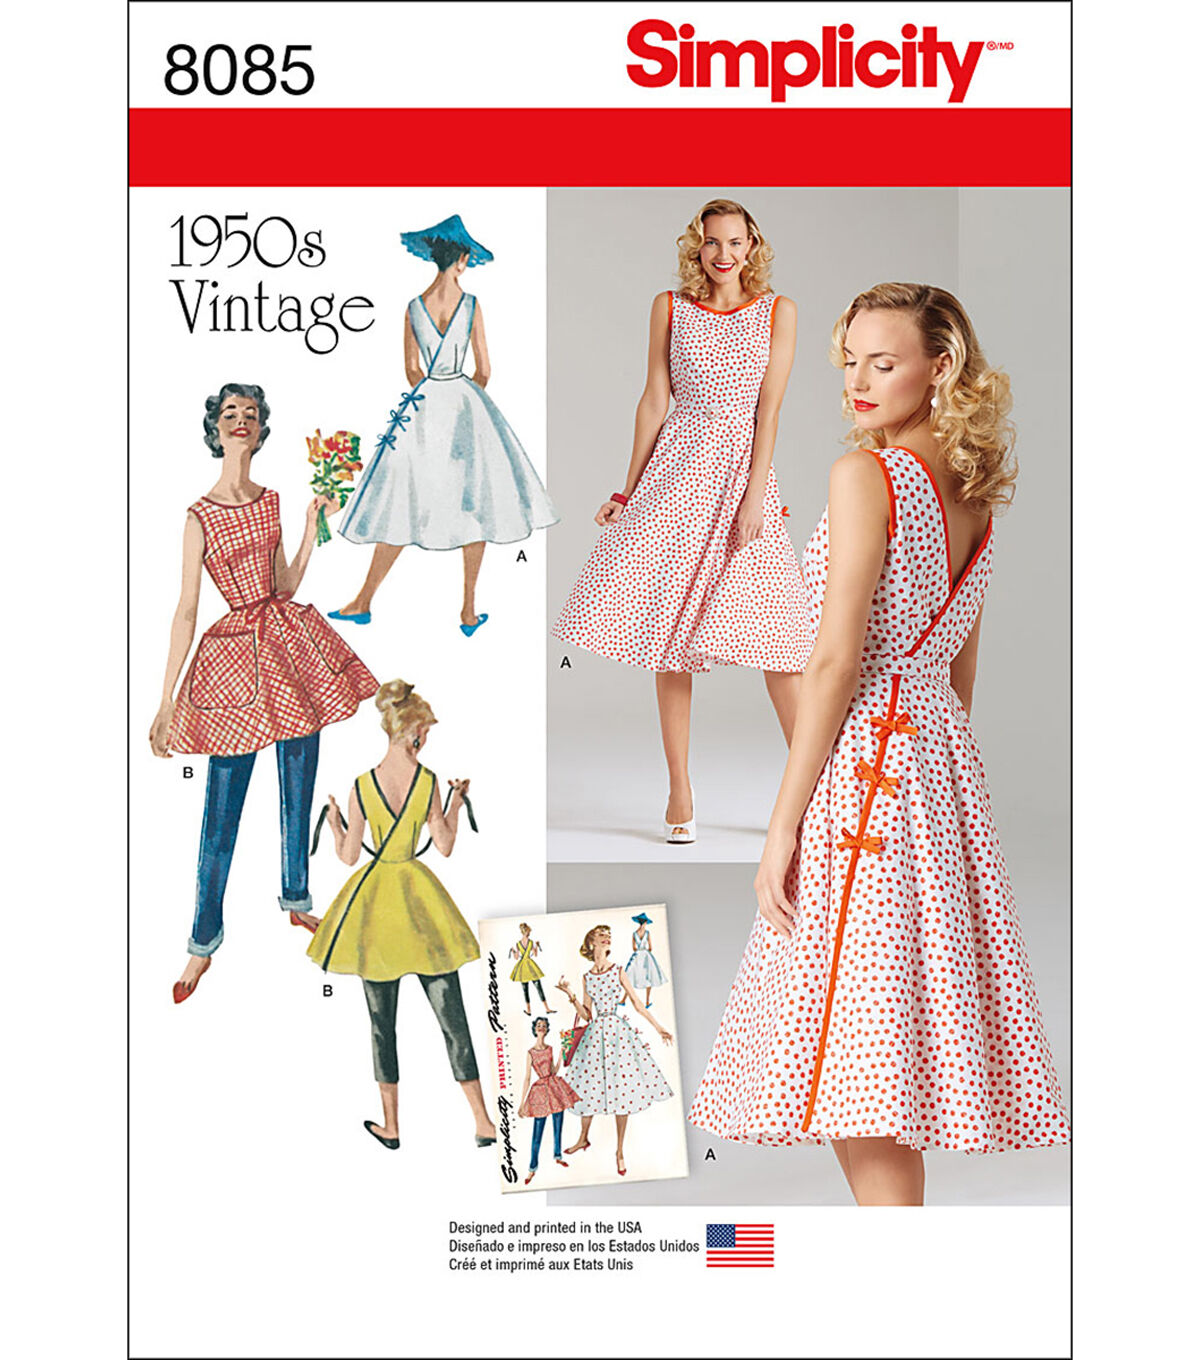 3fcb565ba5 1950s Sewing Patterns | Dresses, Skirts, Tops, Mens Simplicity Patterns  US8085H5 Dresses -